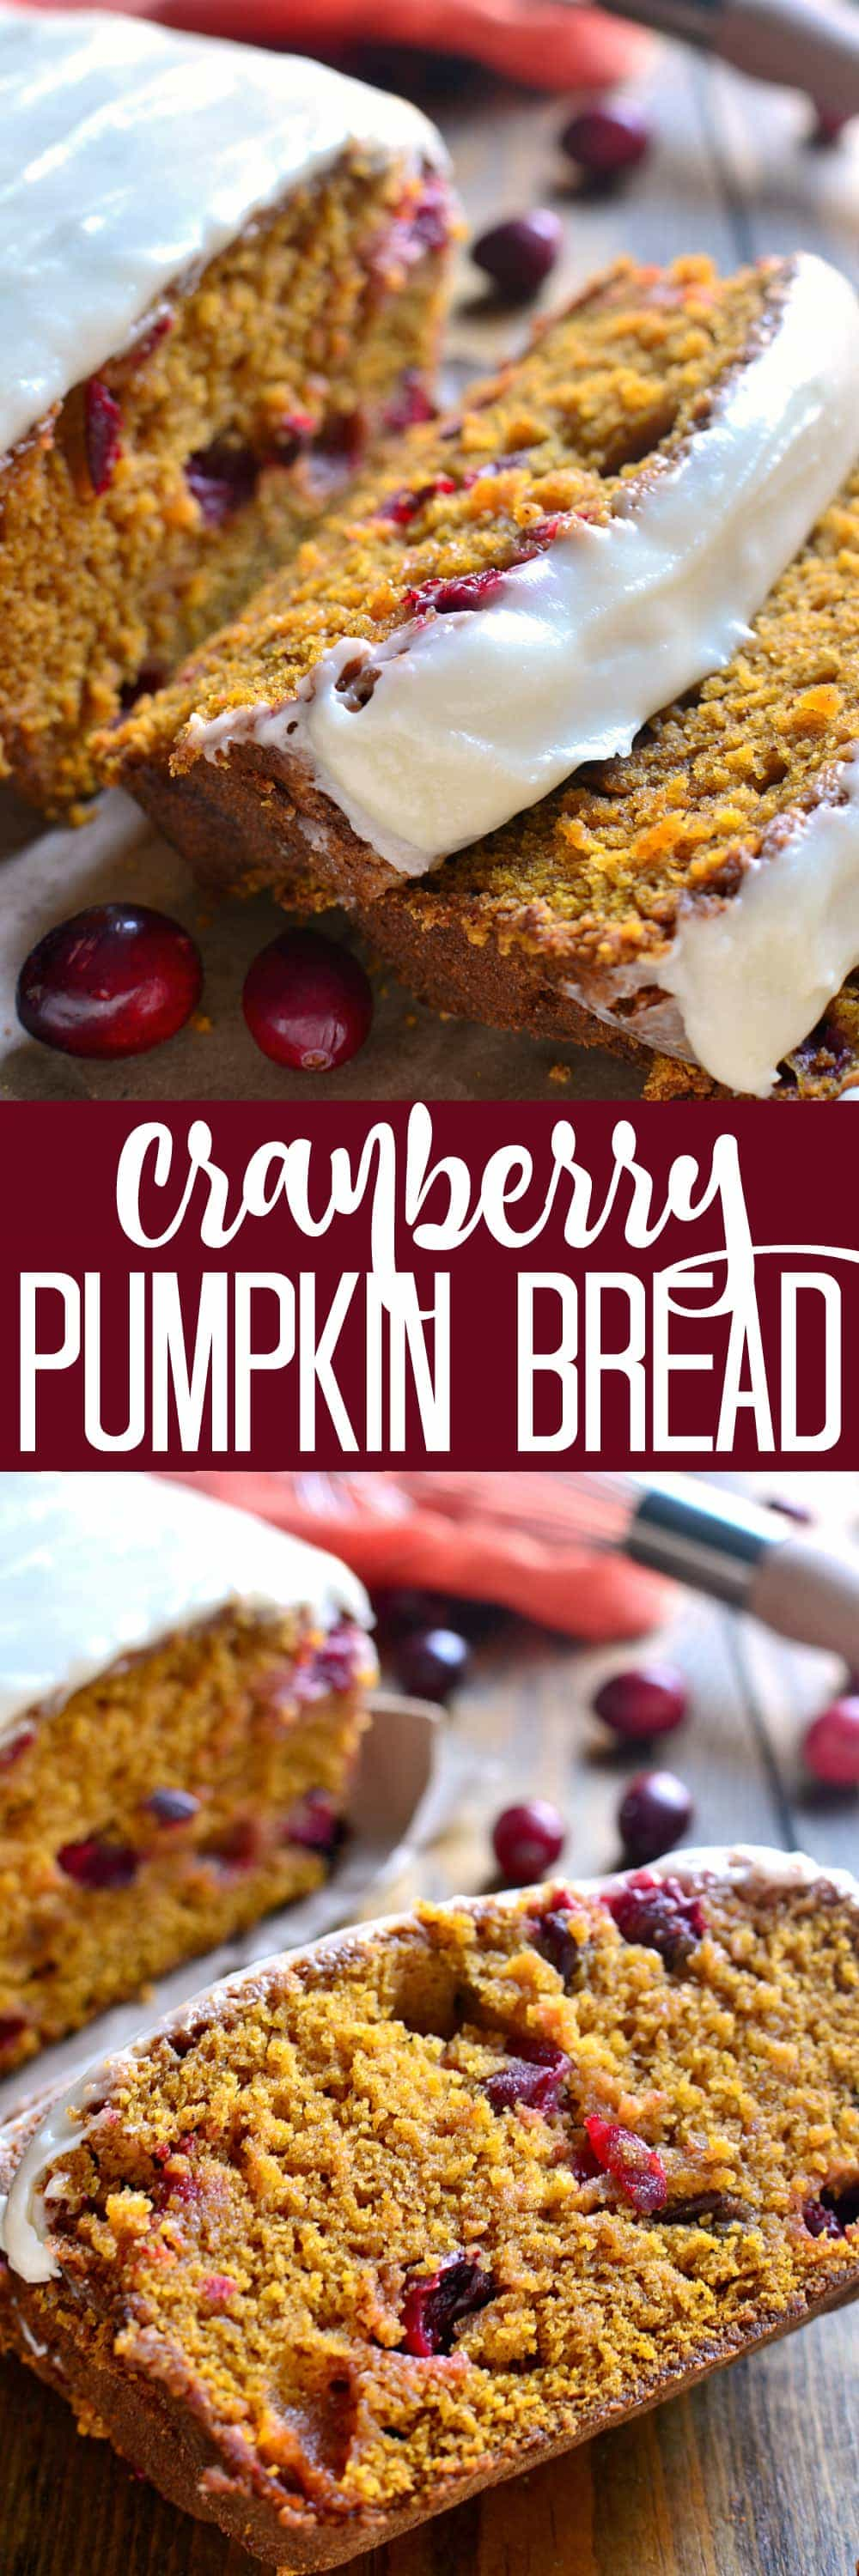 Cranberry Pumpkin Bread - the BEST pumpkin bread recipe, made better with the addition of fresh cranberries and sweet cream cheese icing!